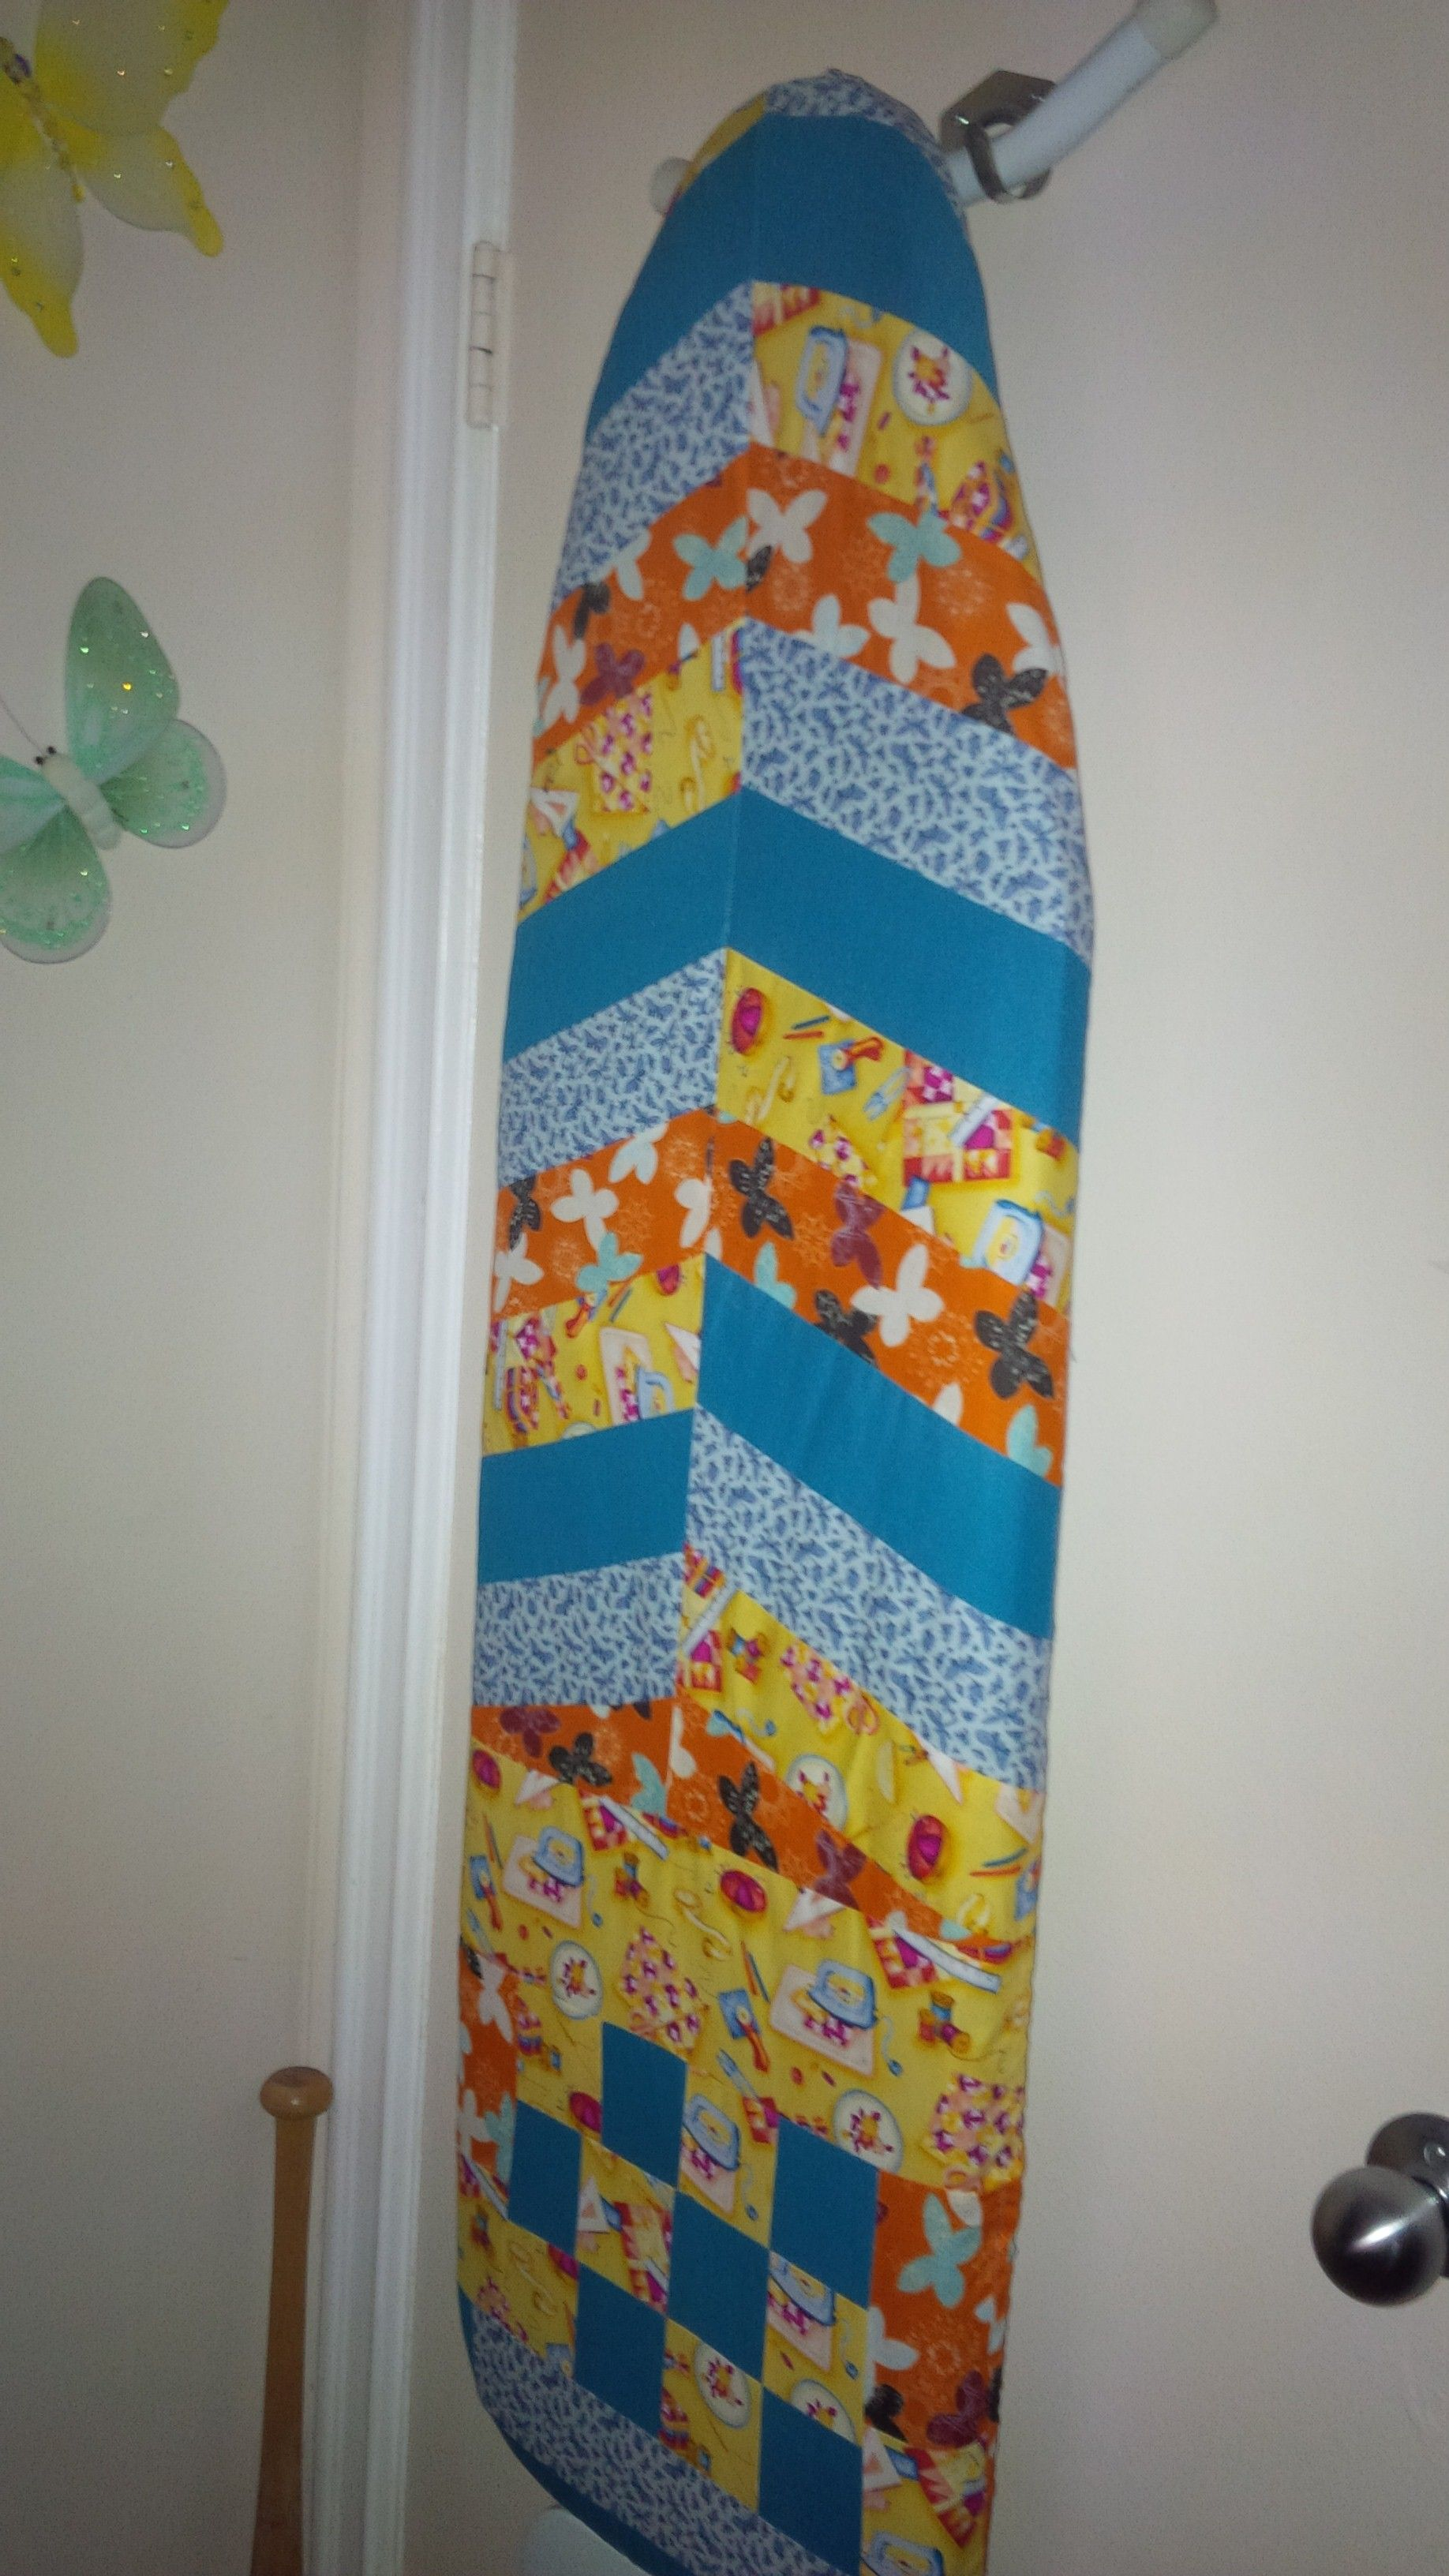 Quilted ironing board cover | My finished projects | Pinterest ... : quilted ironing board cover - Adamdwight.com